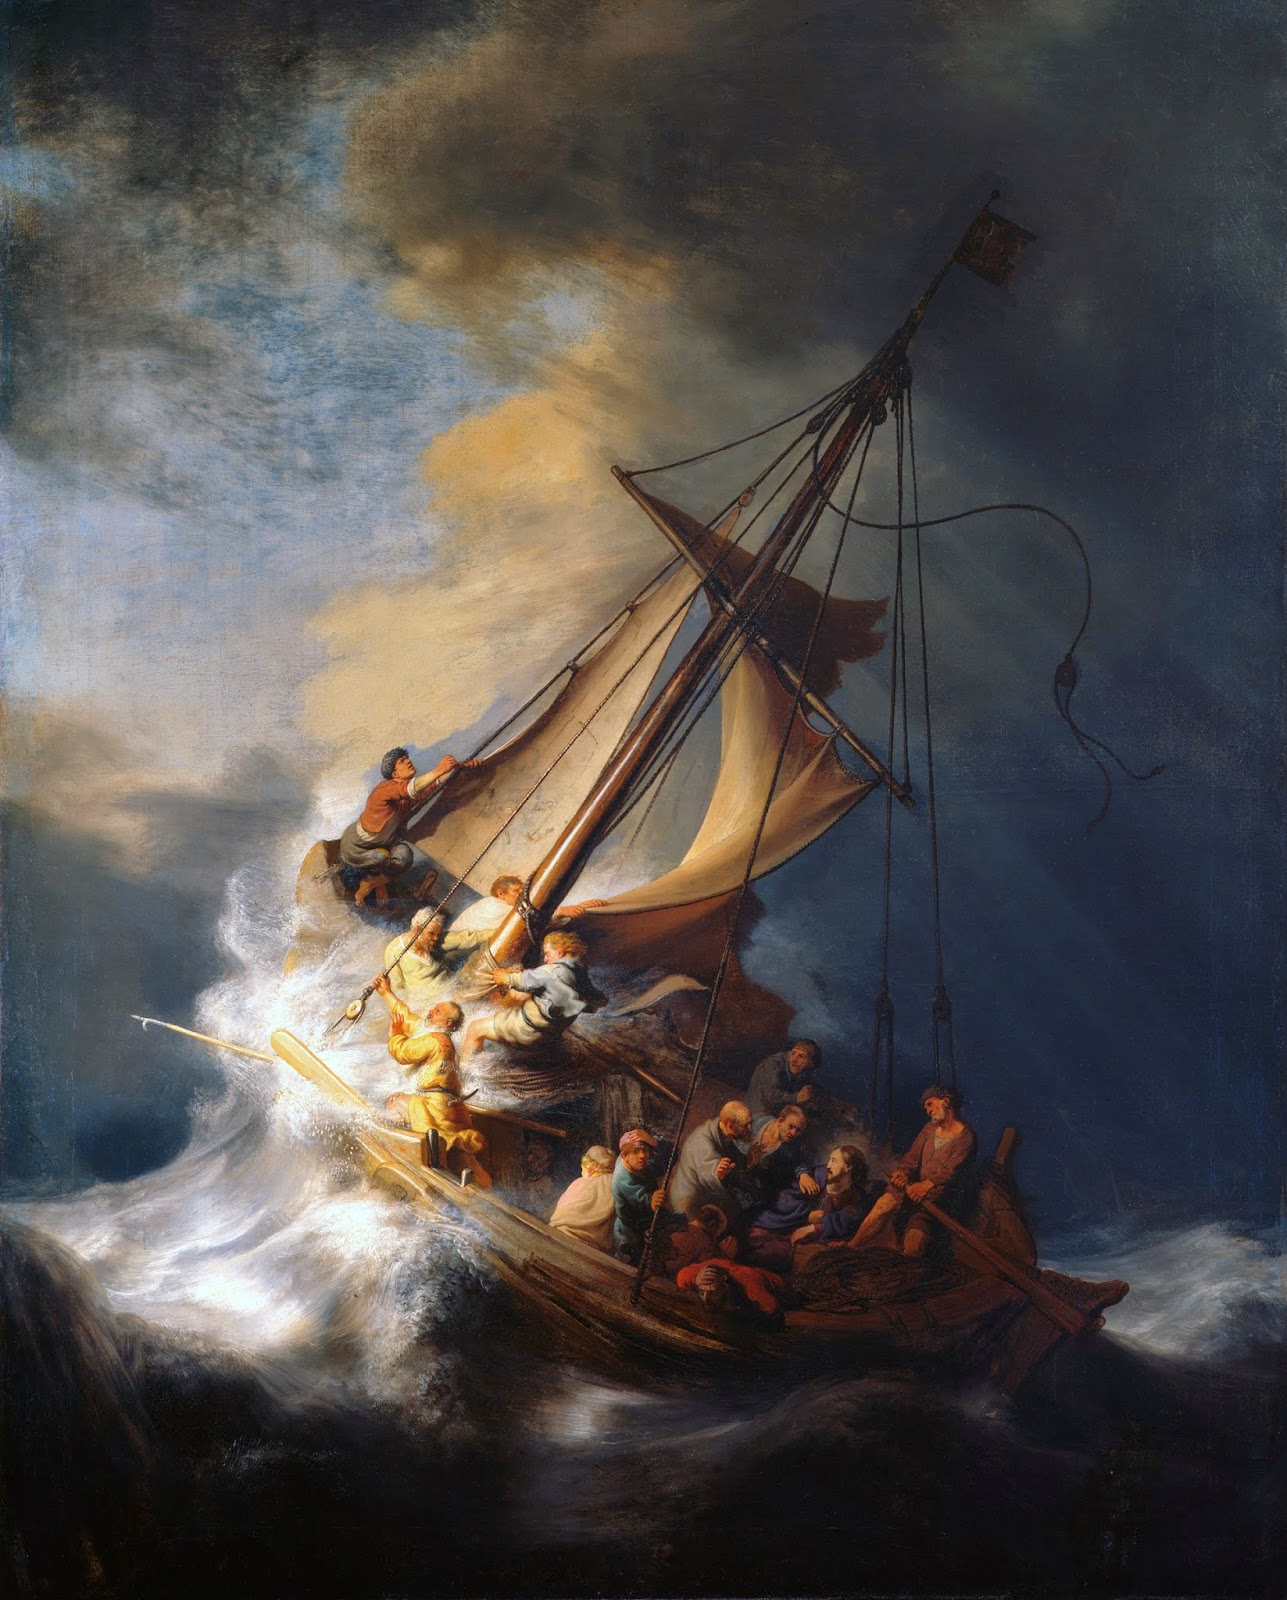 painting of 12 fisherman on a ship on the sea, trying to keep it calm